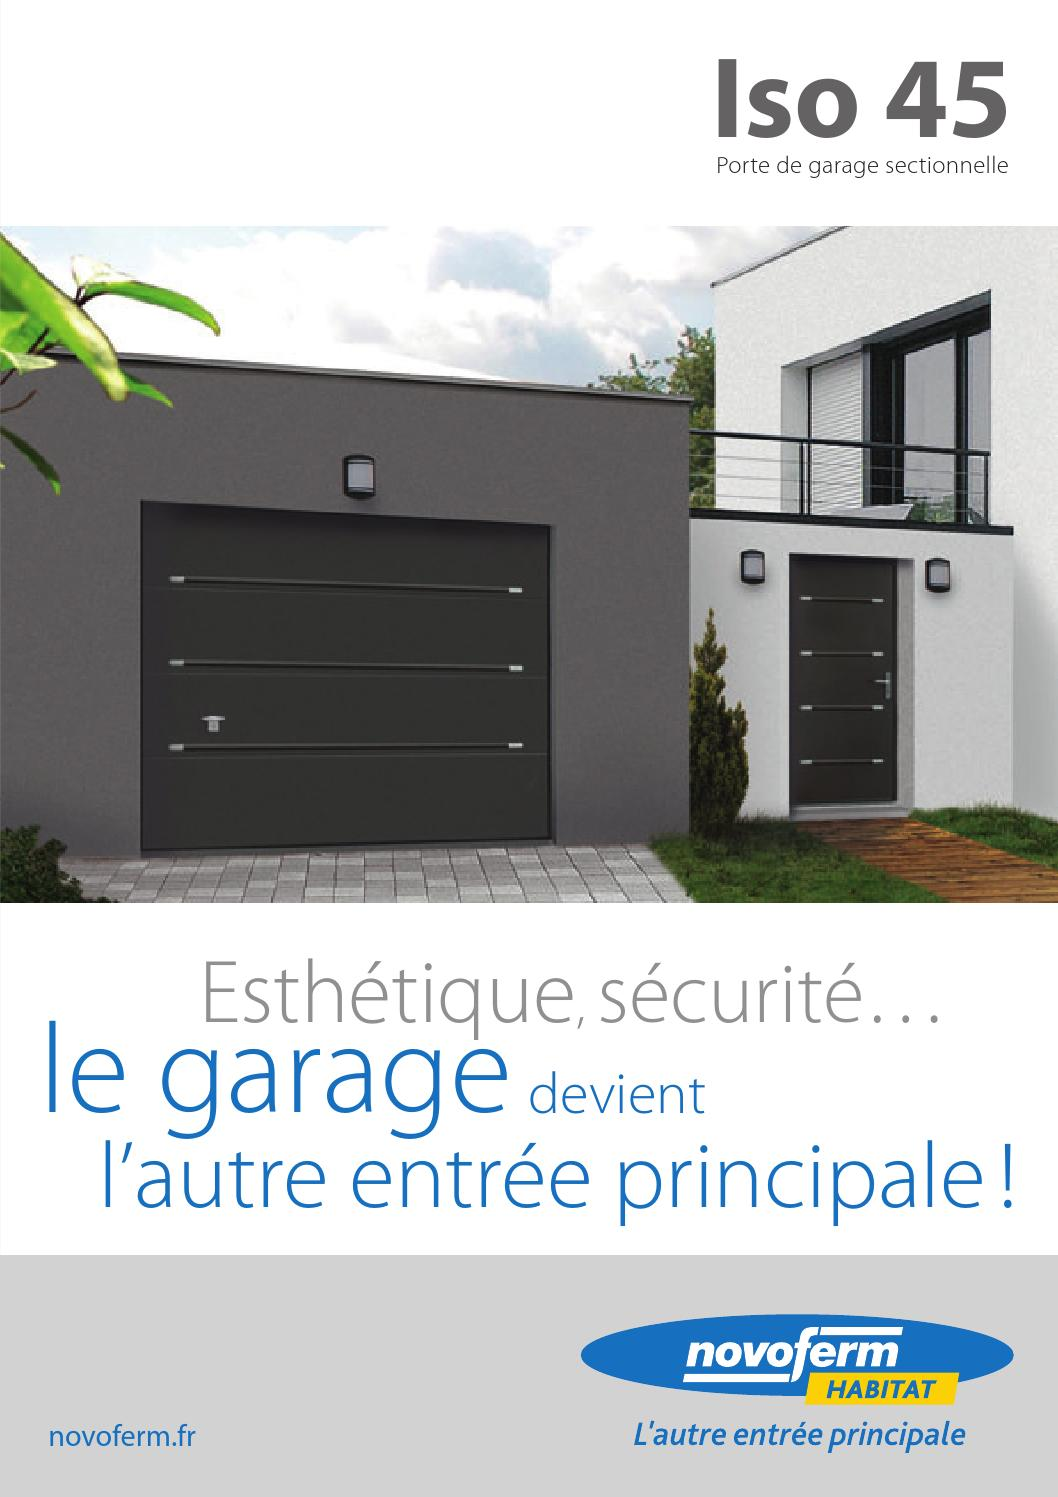 porte de garage sectionnelle iso 45 by uwl wwp